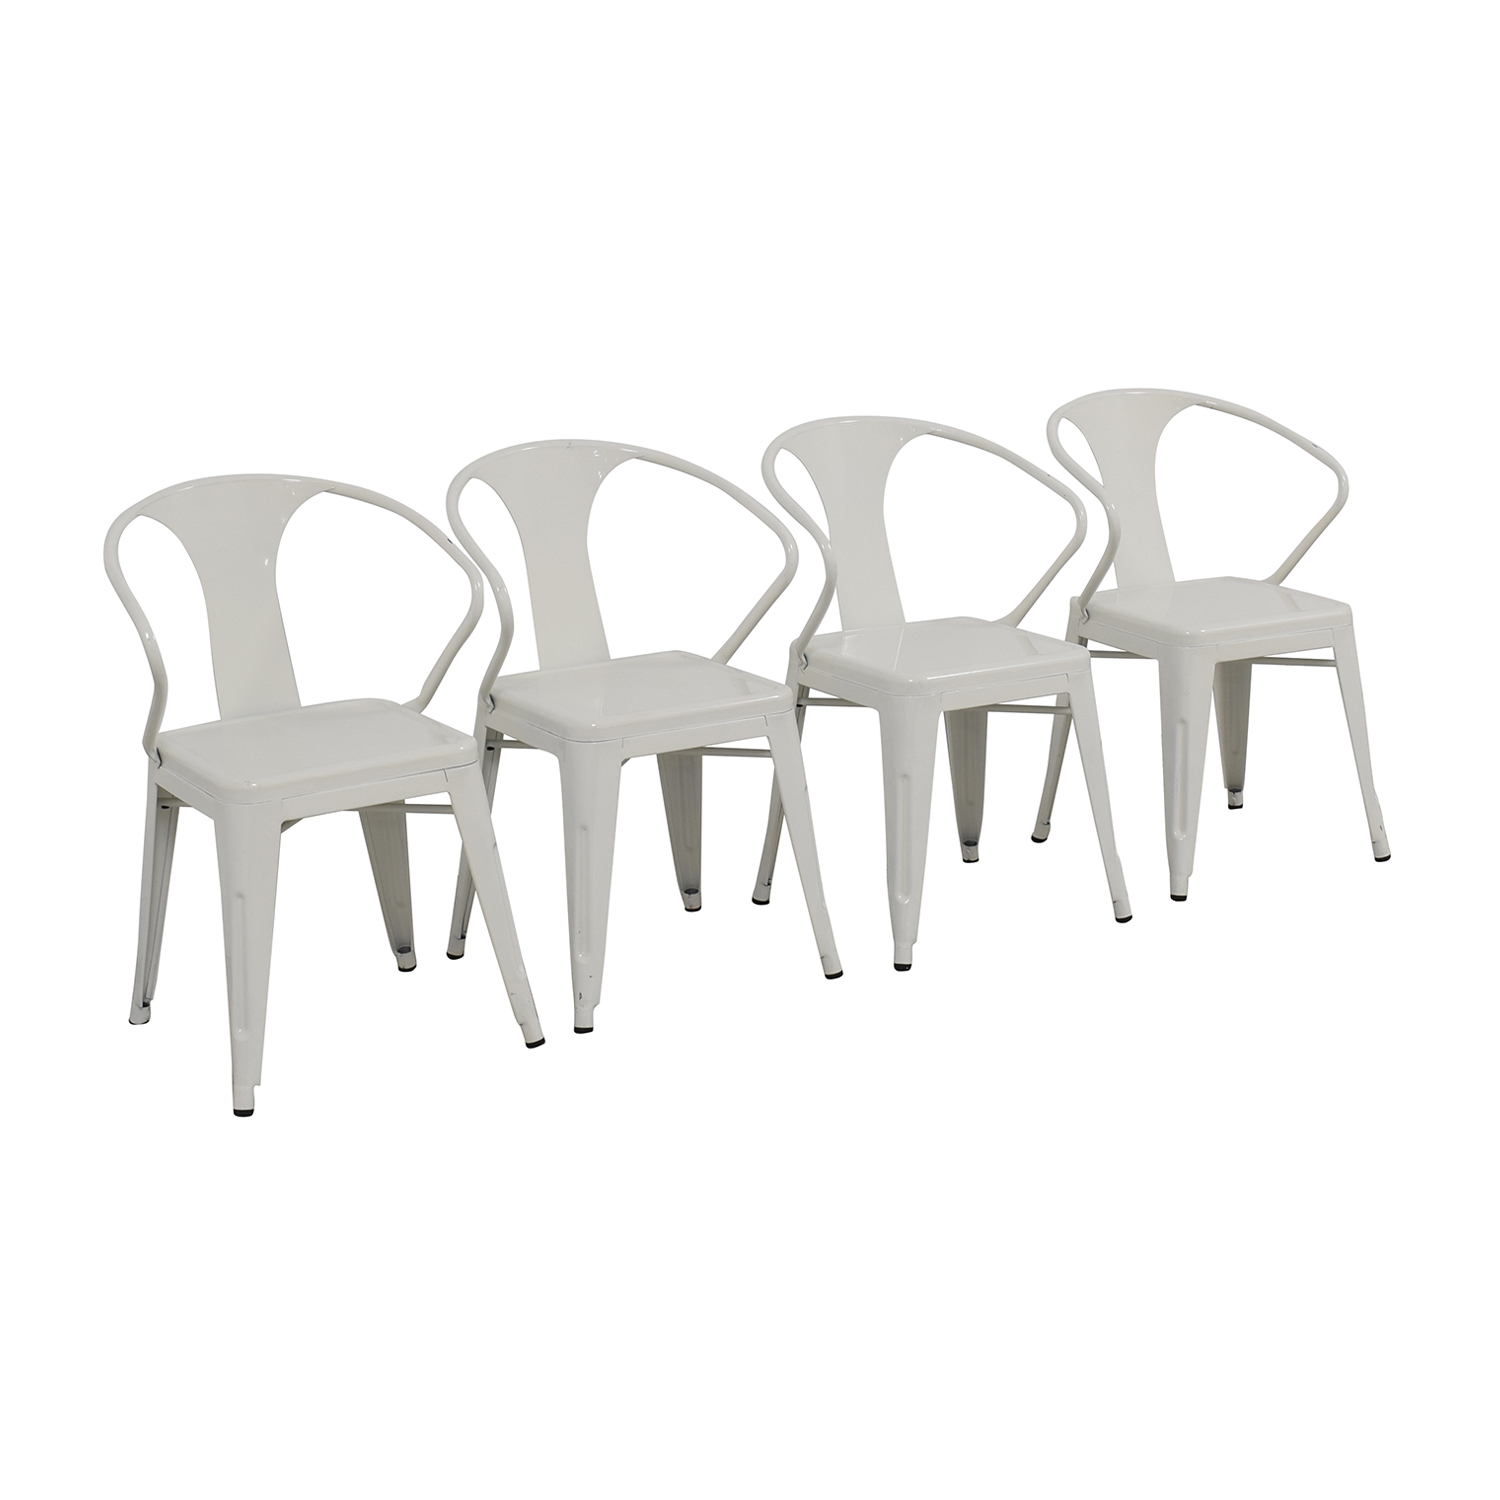 ... Buy Overstock White European Chairs Overstock ...